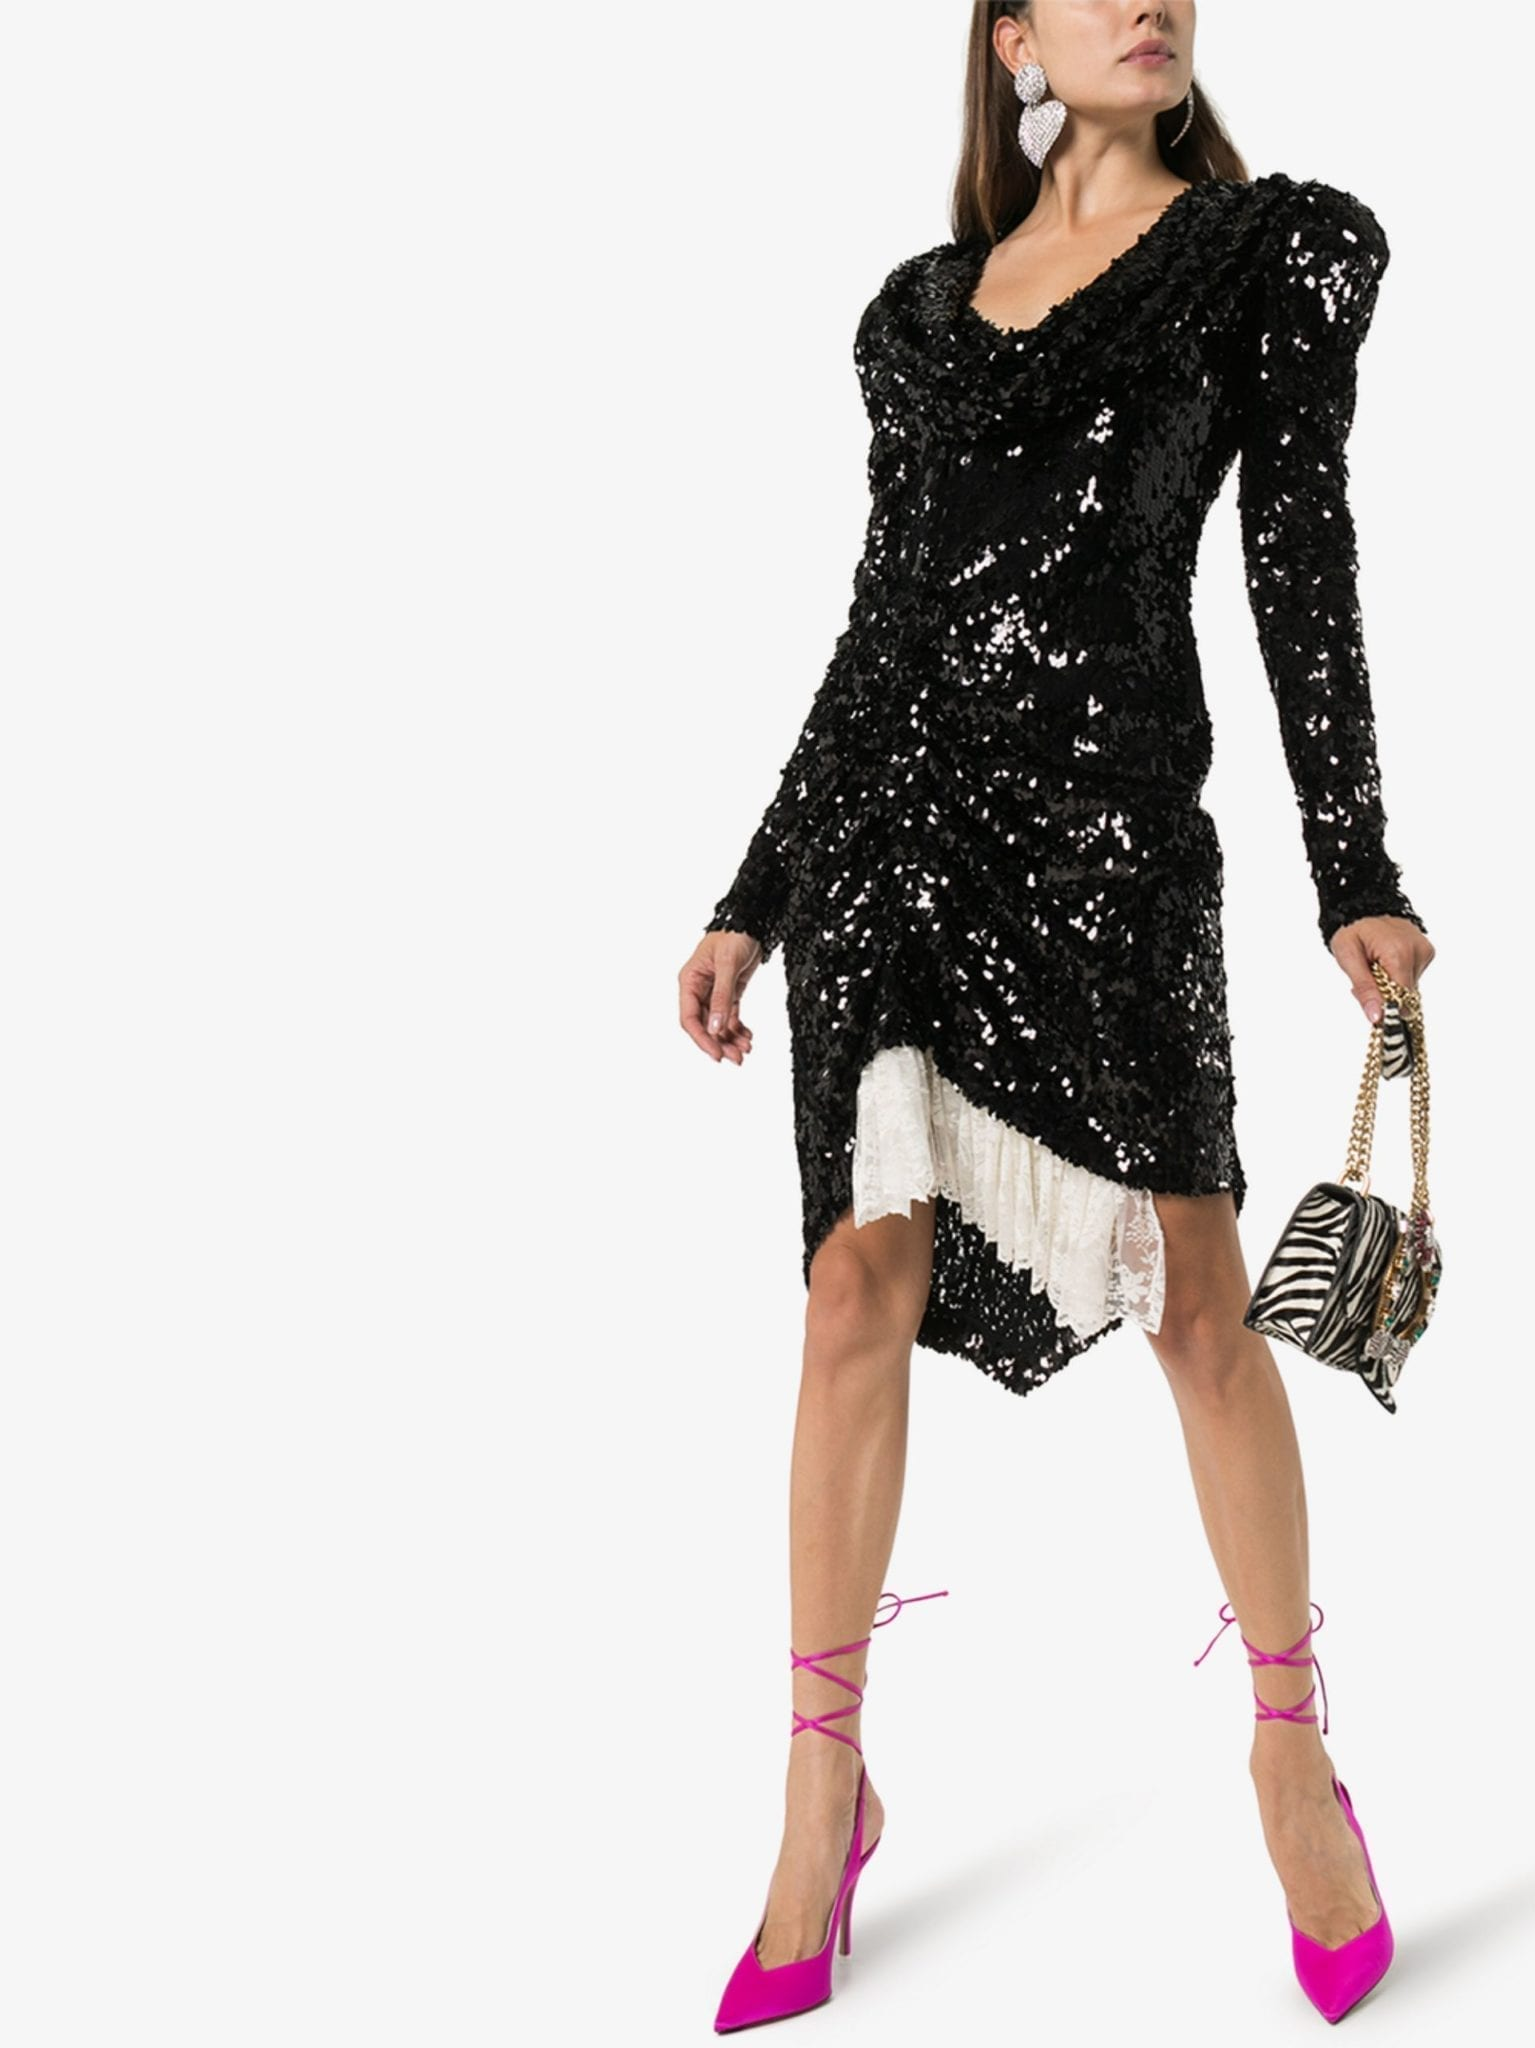 PREEN BY THORNTON BREGAZZI Karin Sequin Embellished Dress